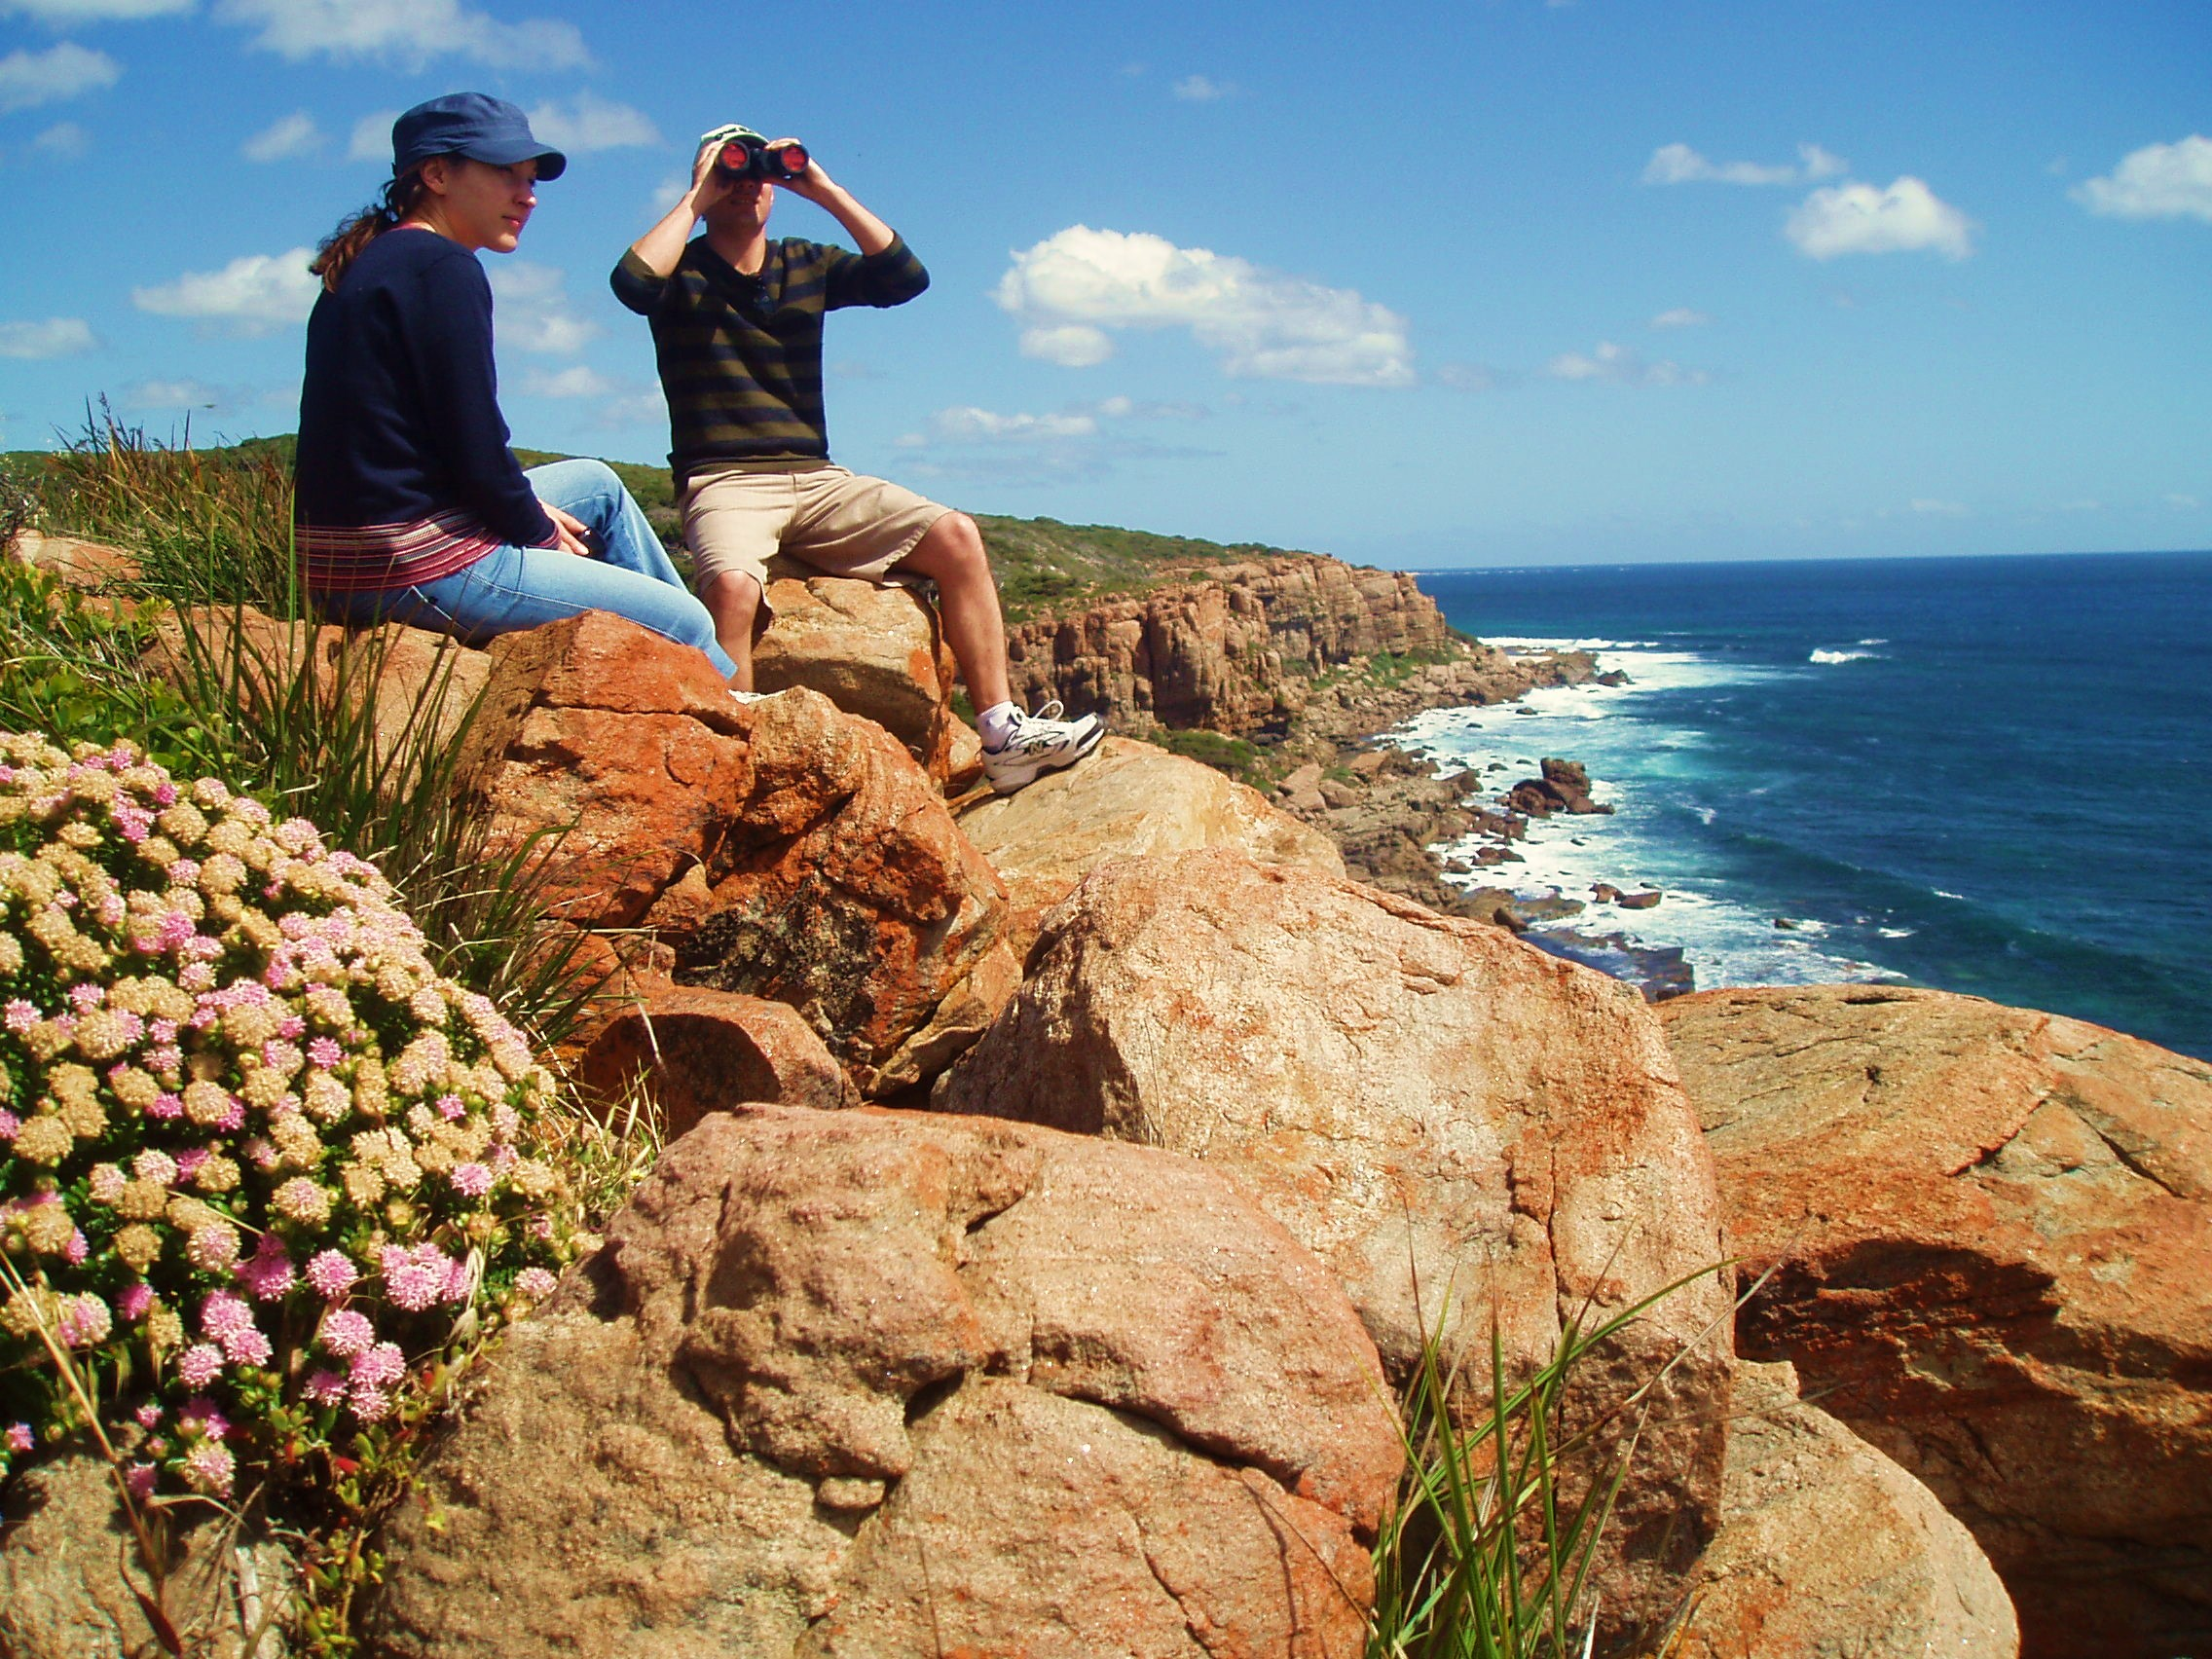 Mark and Alexis from Sydney atop the Wilyabrup Cliffs